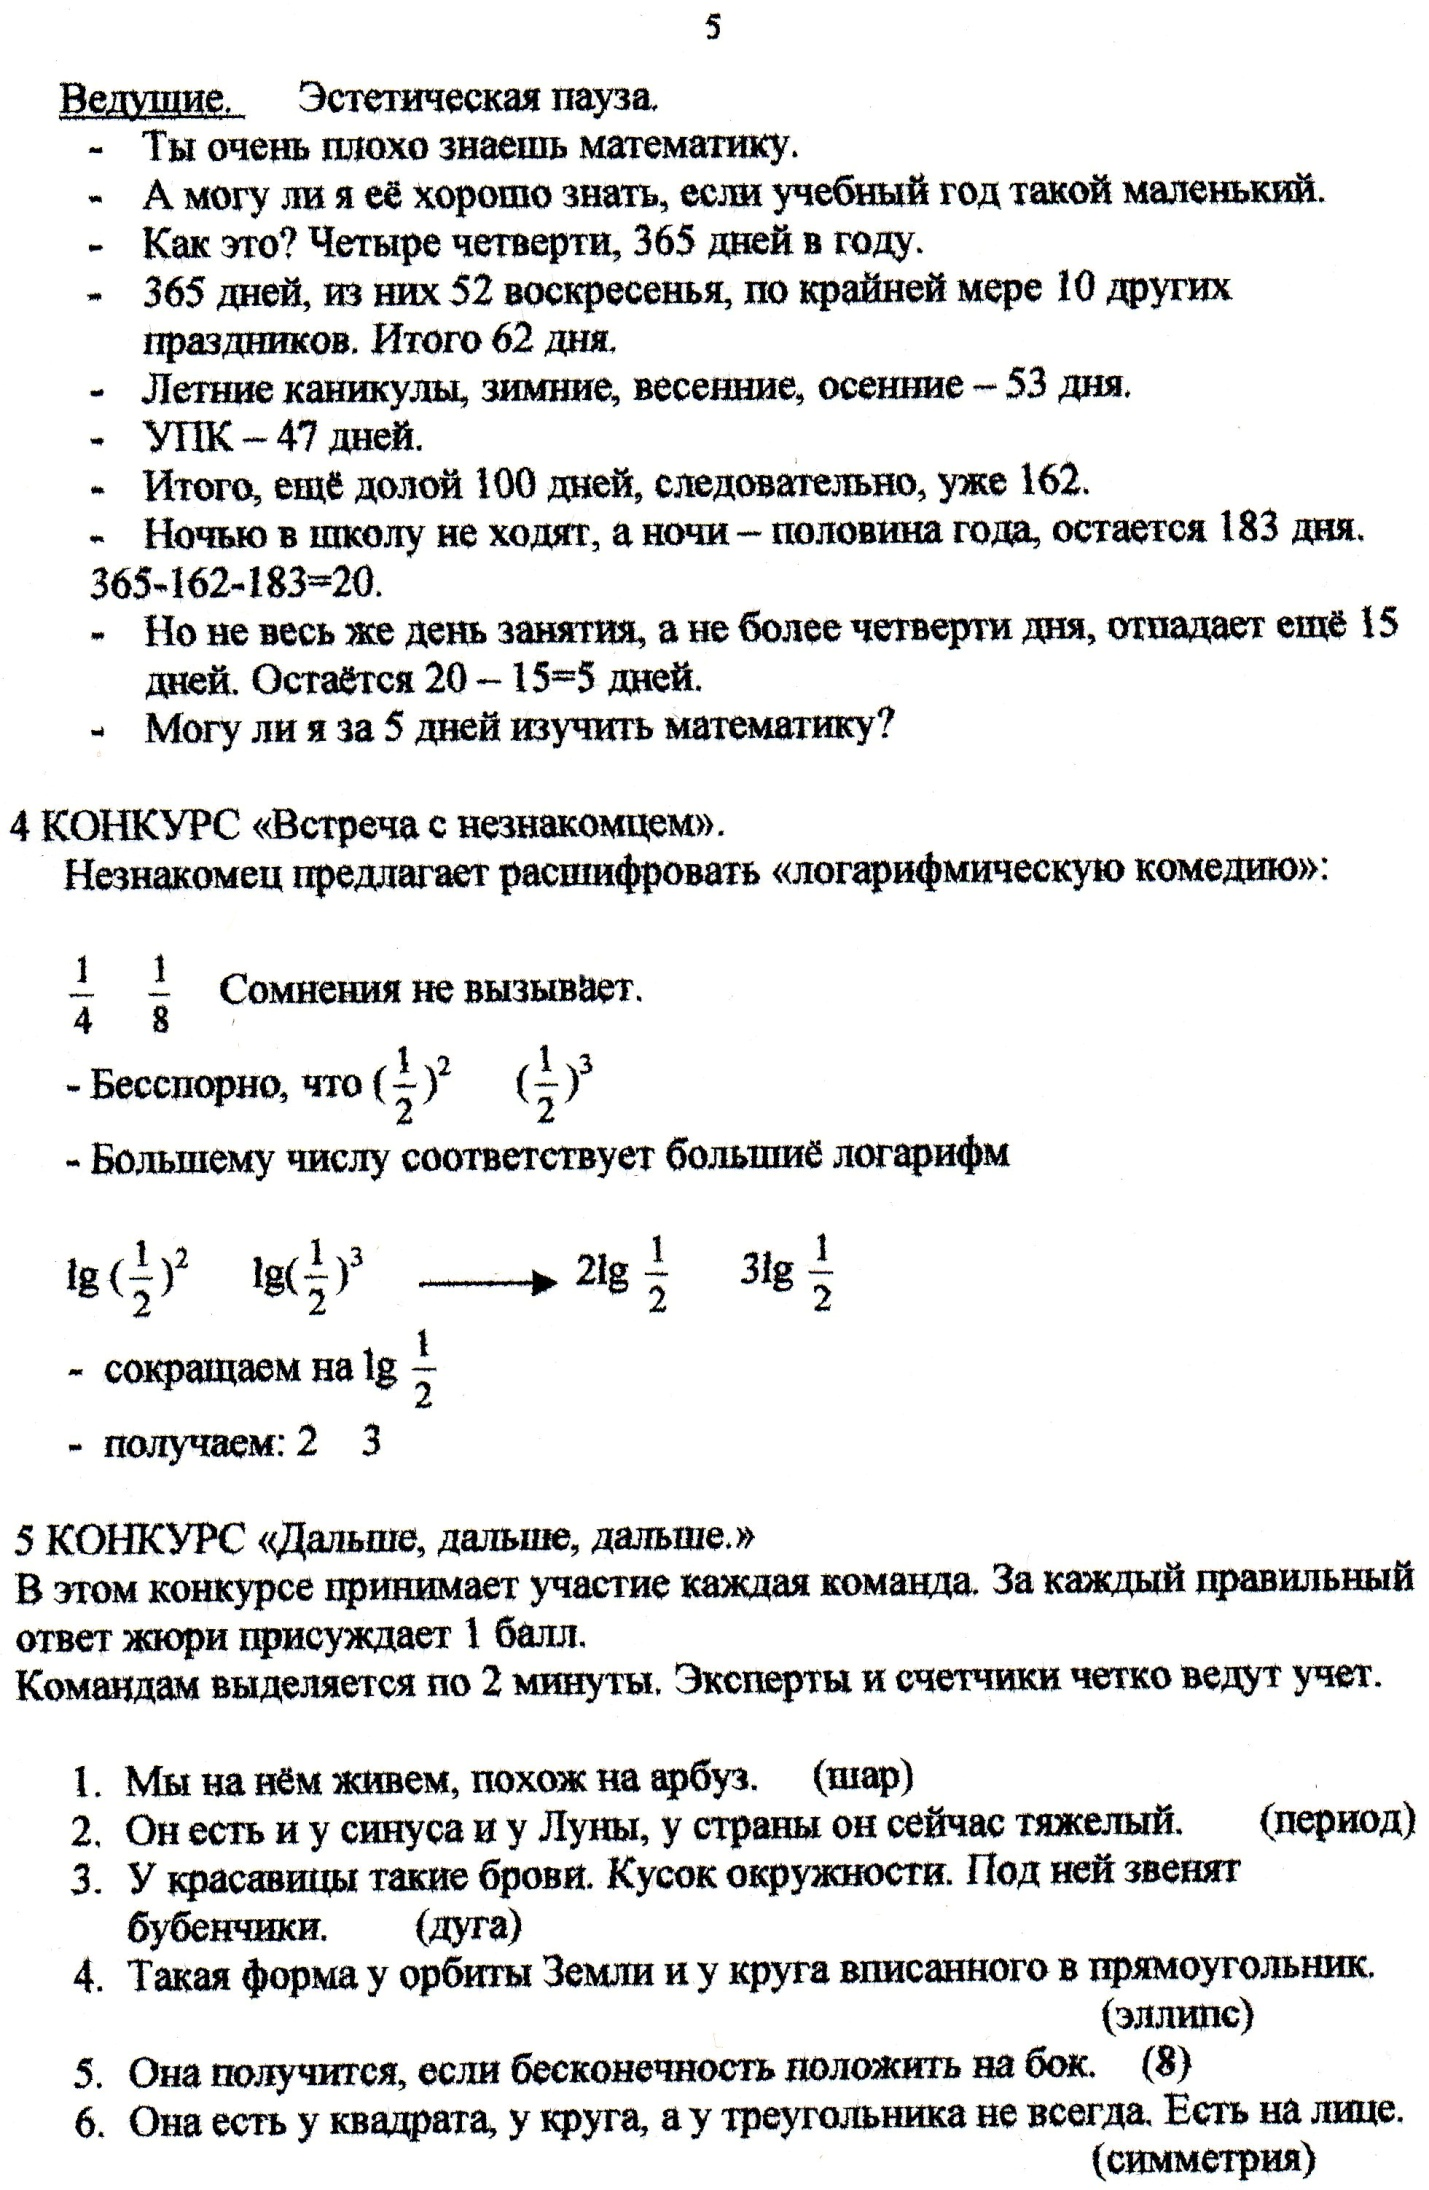 C:\Users\Валентина\Pictures\img176.jpg